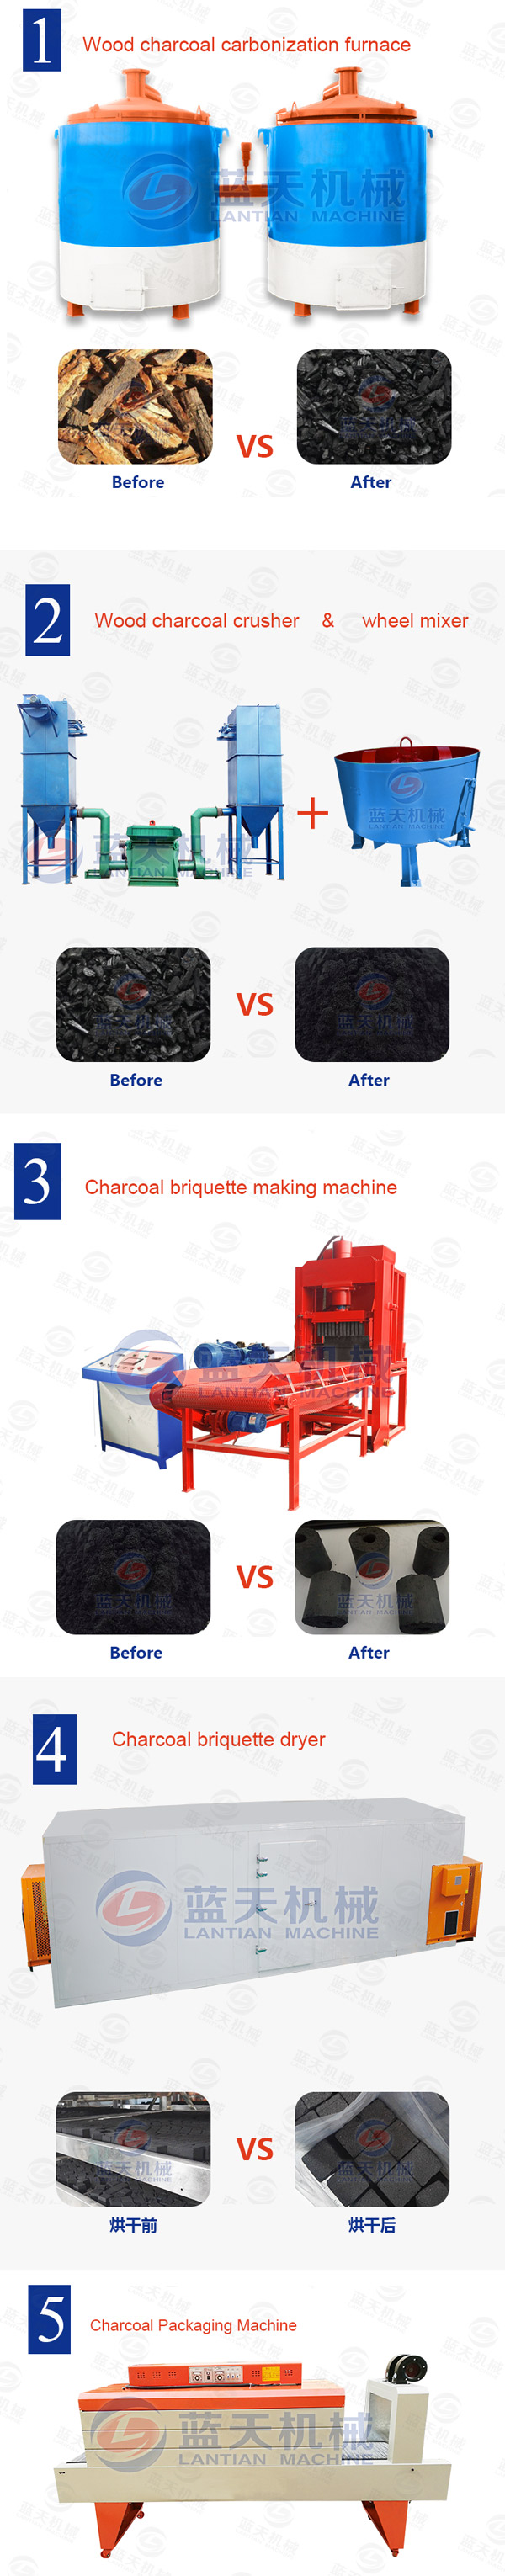 Product line of charcoal briquetting machine